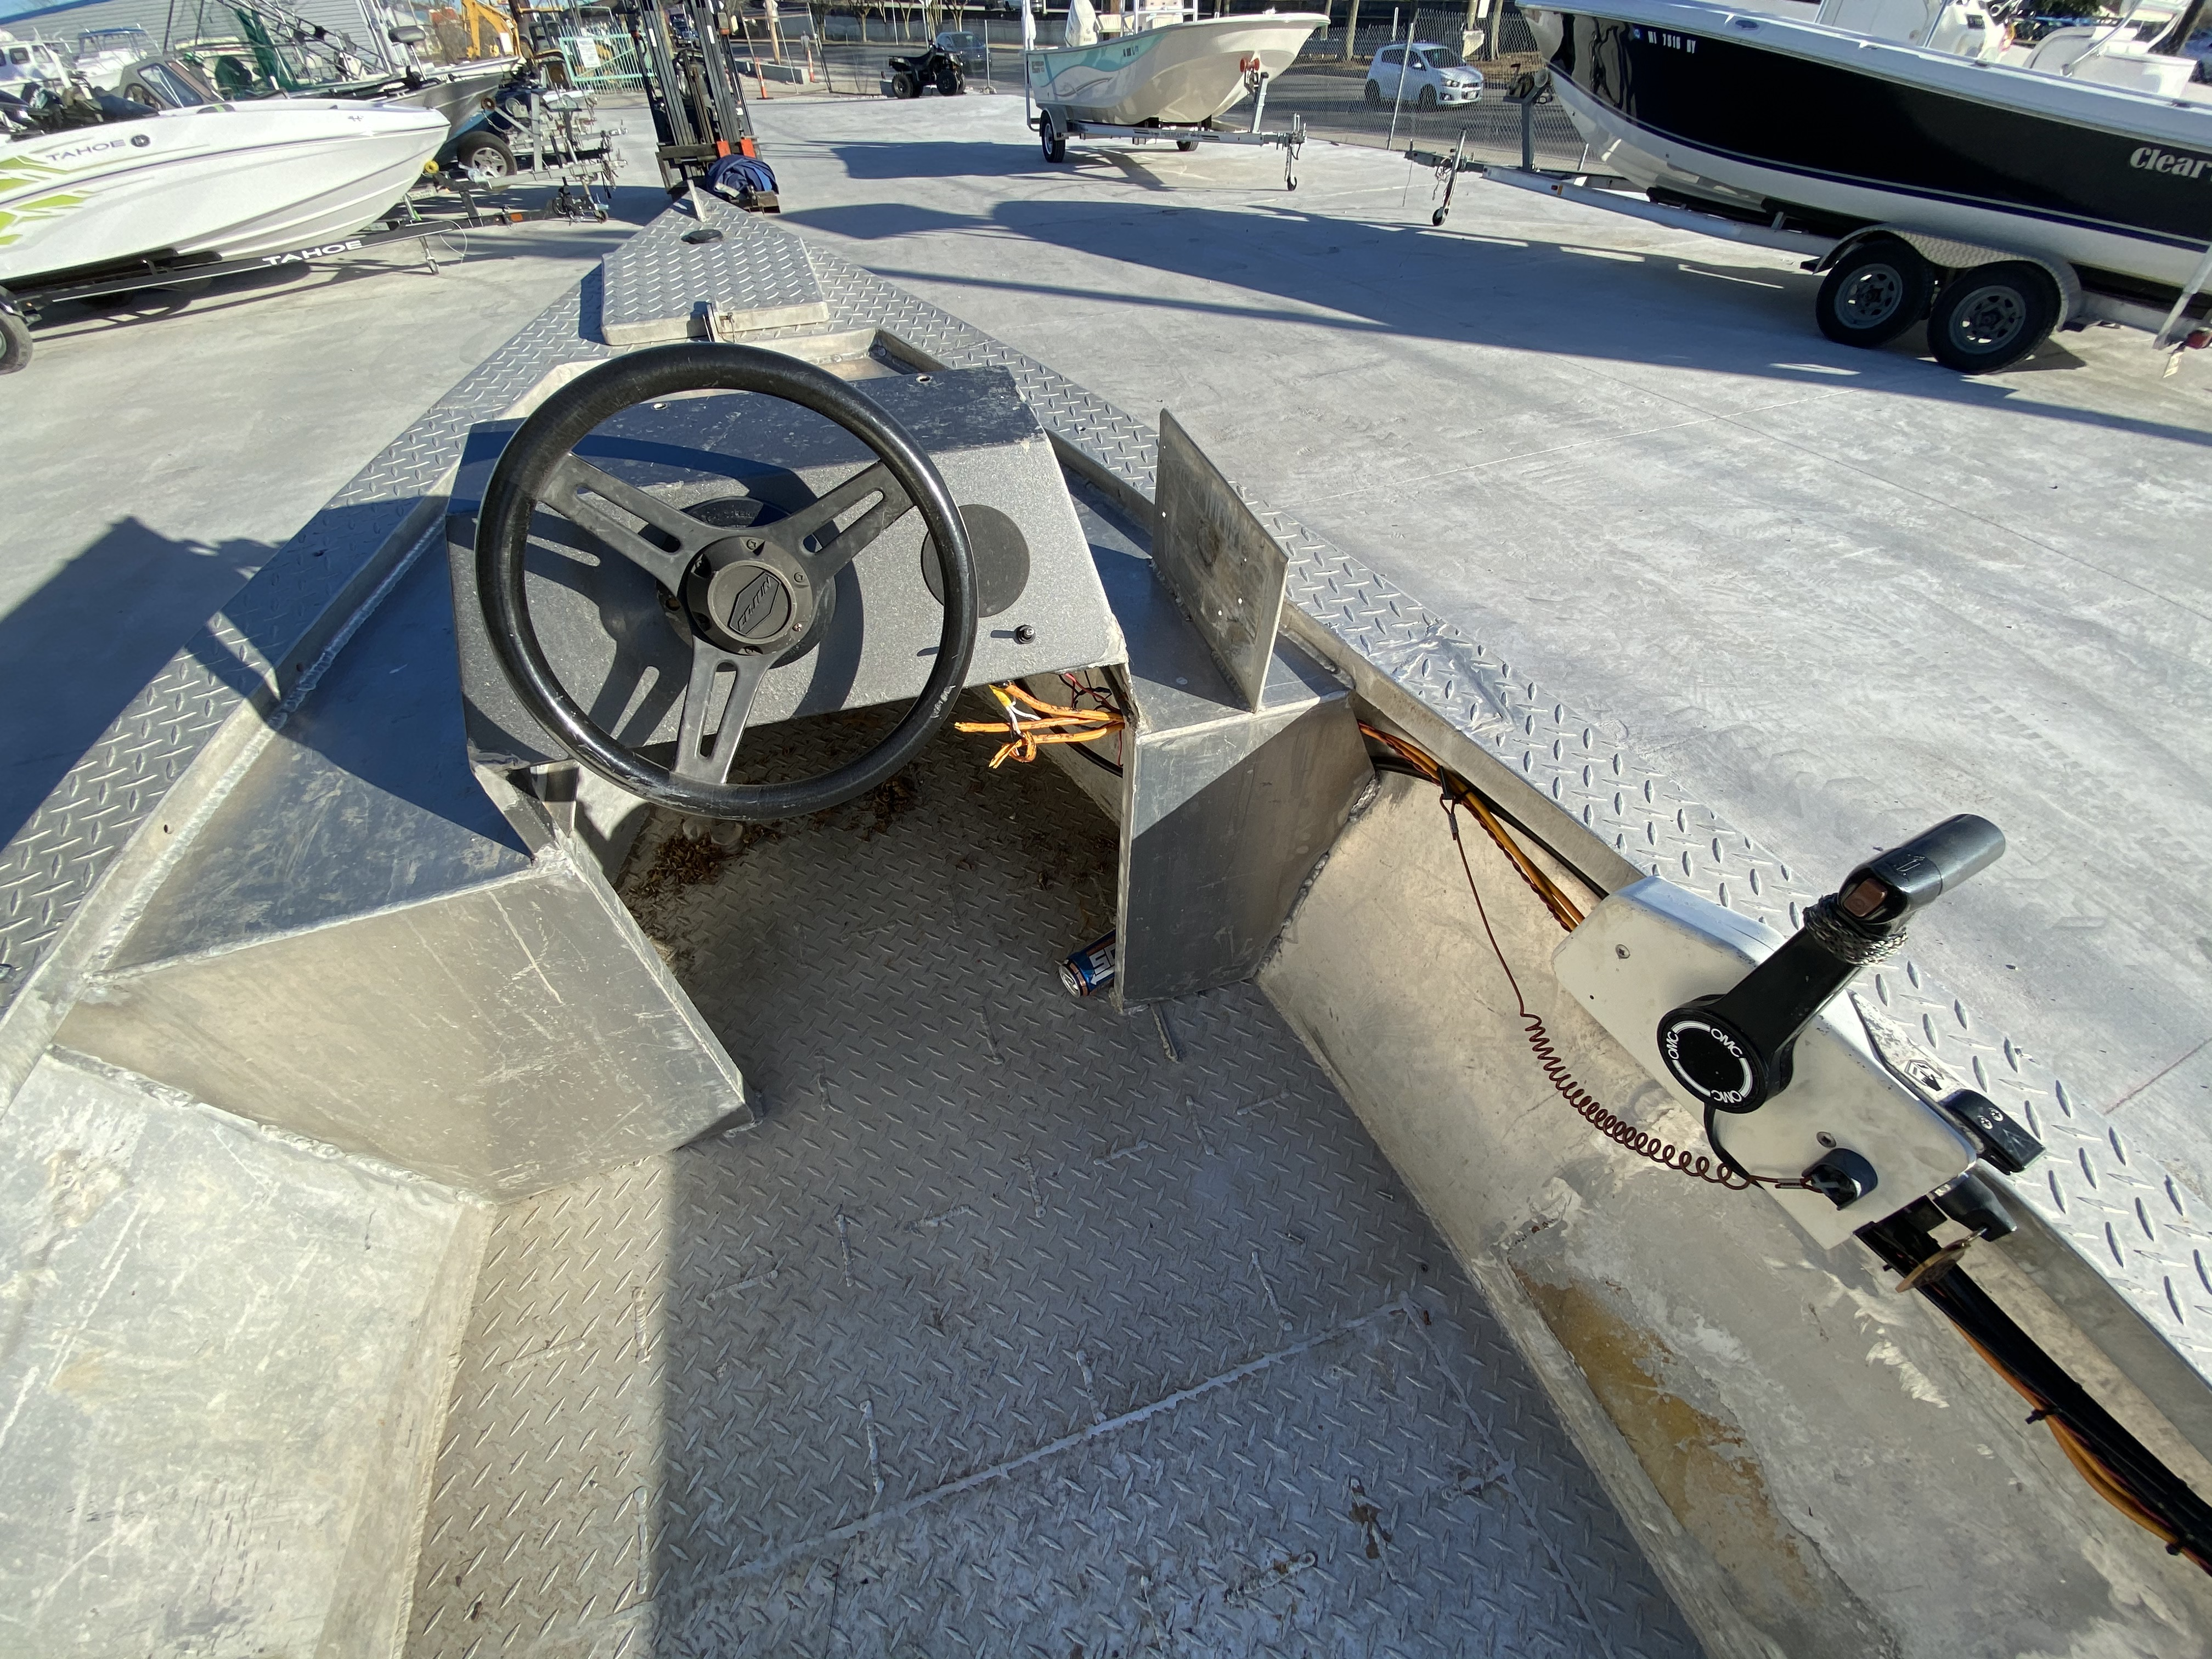 1993 Gravois boat for sale, model of the boat is 17 Skiff & Image # 6 of 8